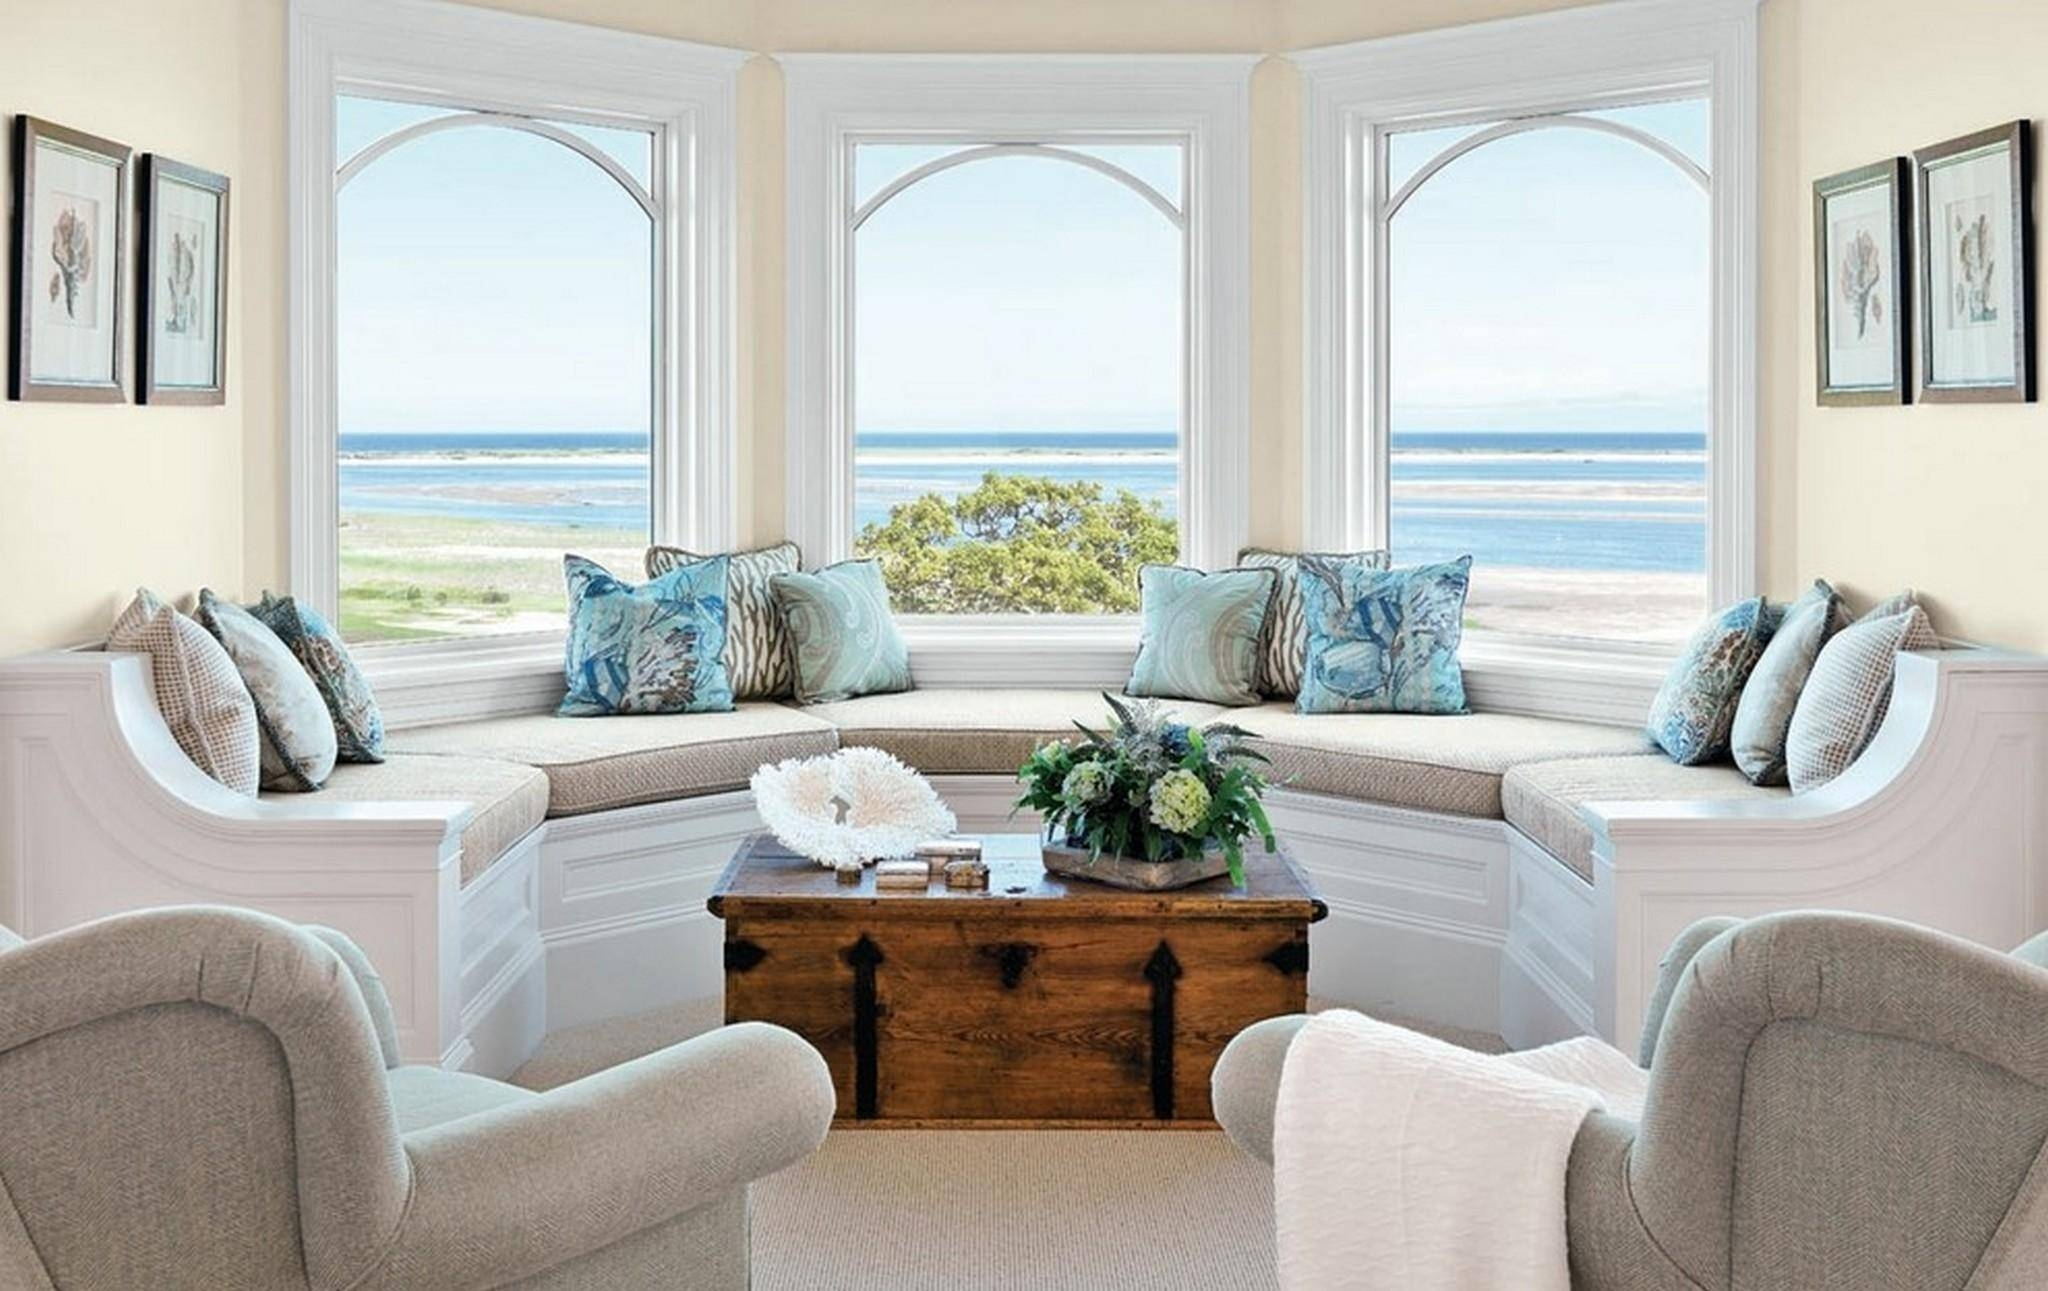 20+ Choices Of Sofas For Bay Window | Sofa Ideas in Window Sofas (Image 2 of 15)